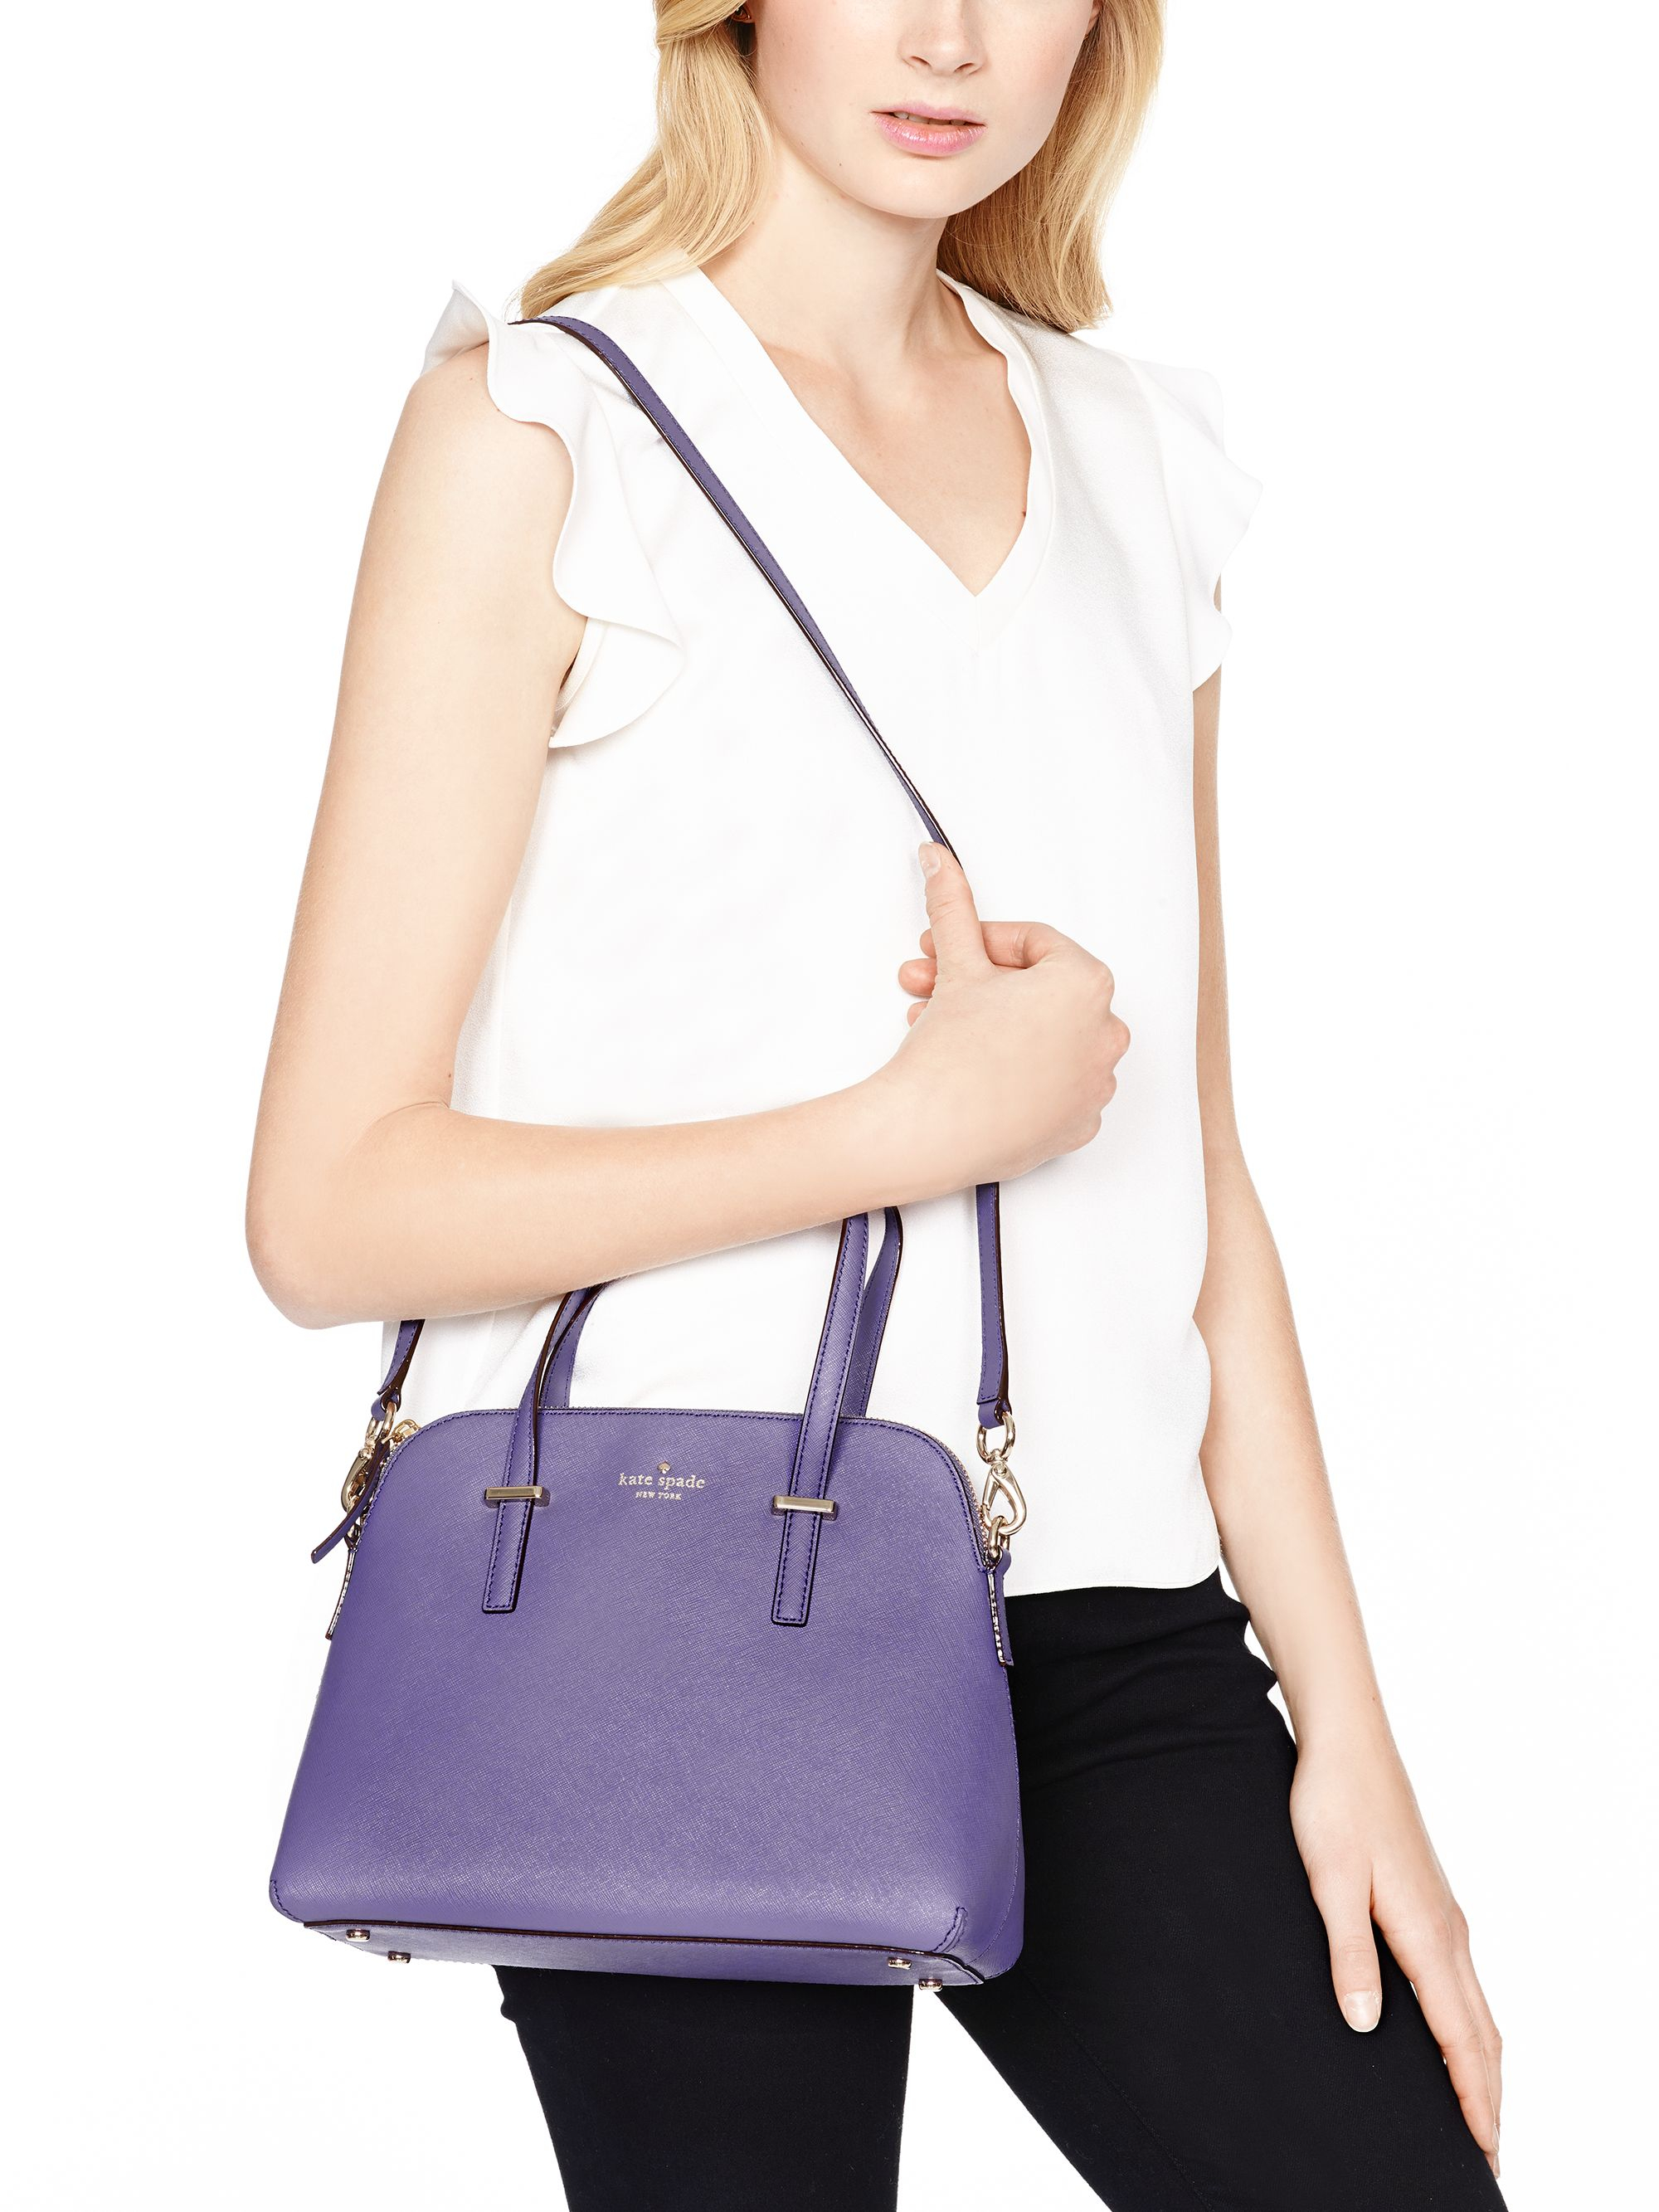 Kate spade Cedar Street Maise in Purple (mountbatten)